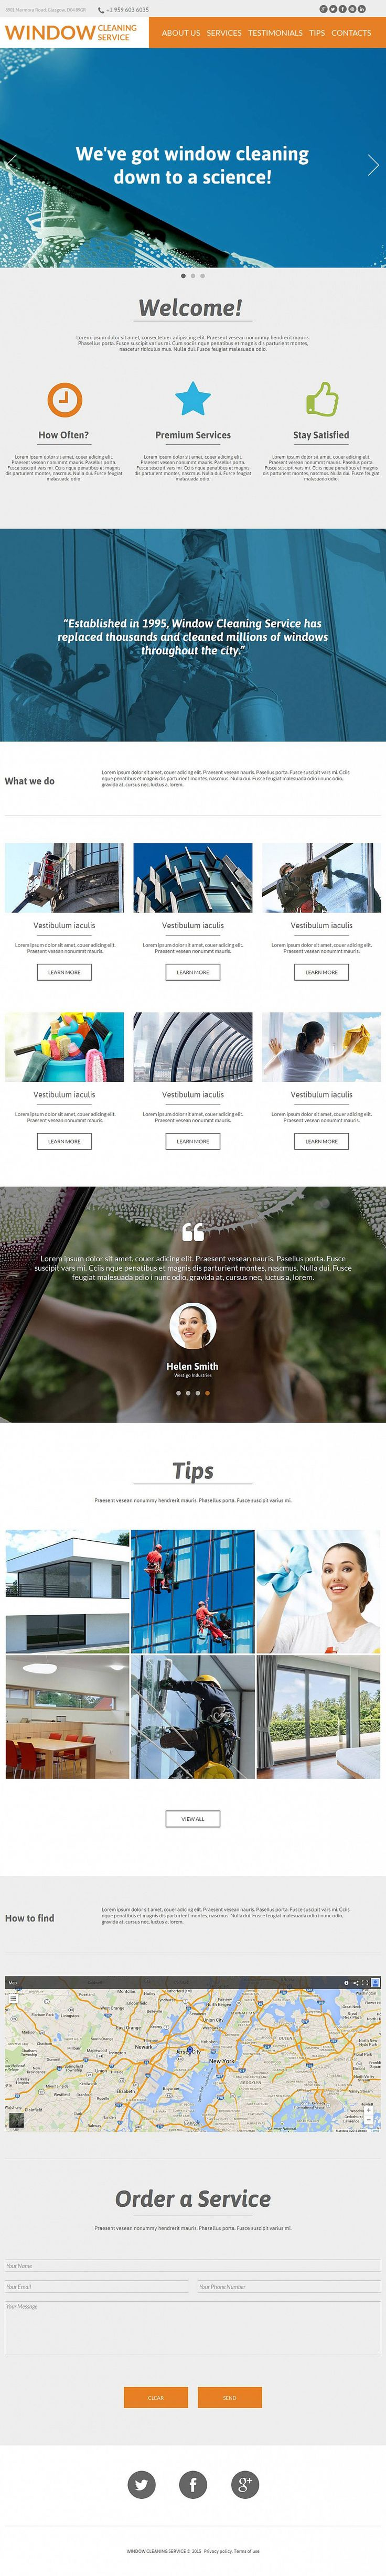 The 7 best single page website design images on pinterest design exclusive one page website theme for window cleaning business if you wajeb Choice Image